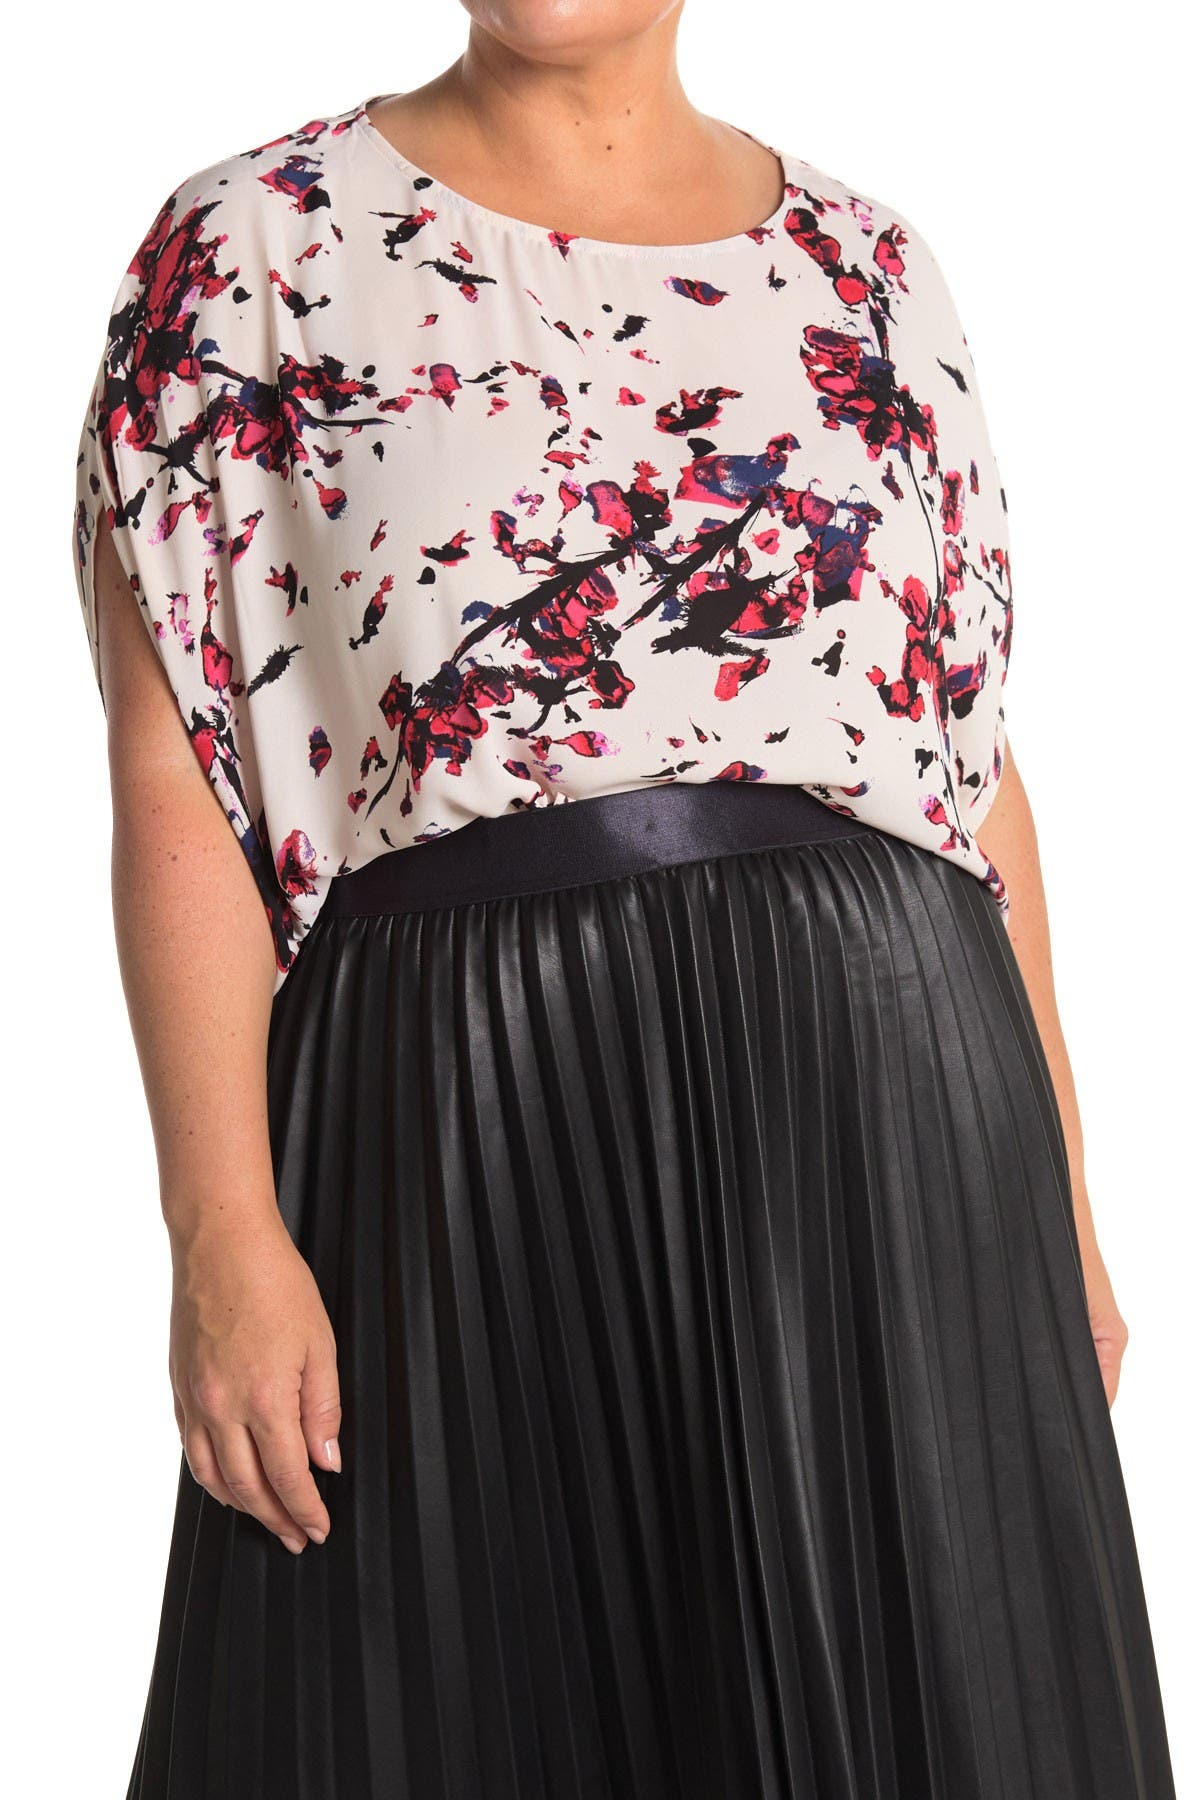 Image of Rachel Rachel Roy Floral Drape Top